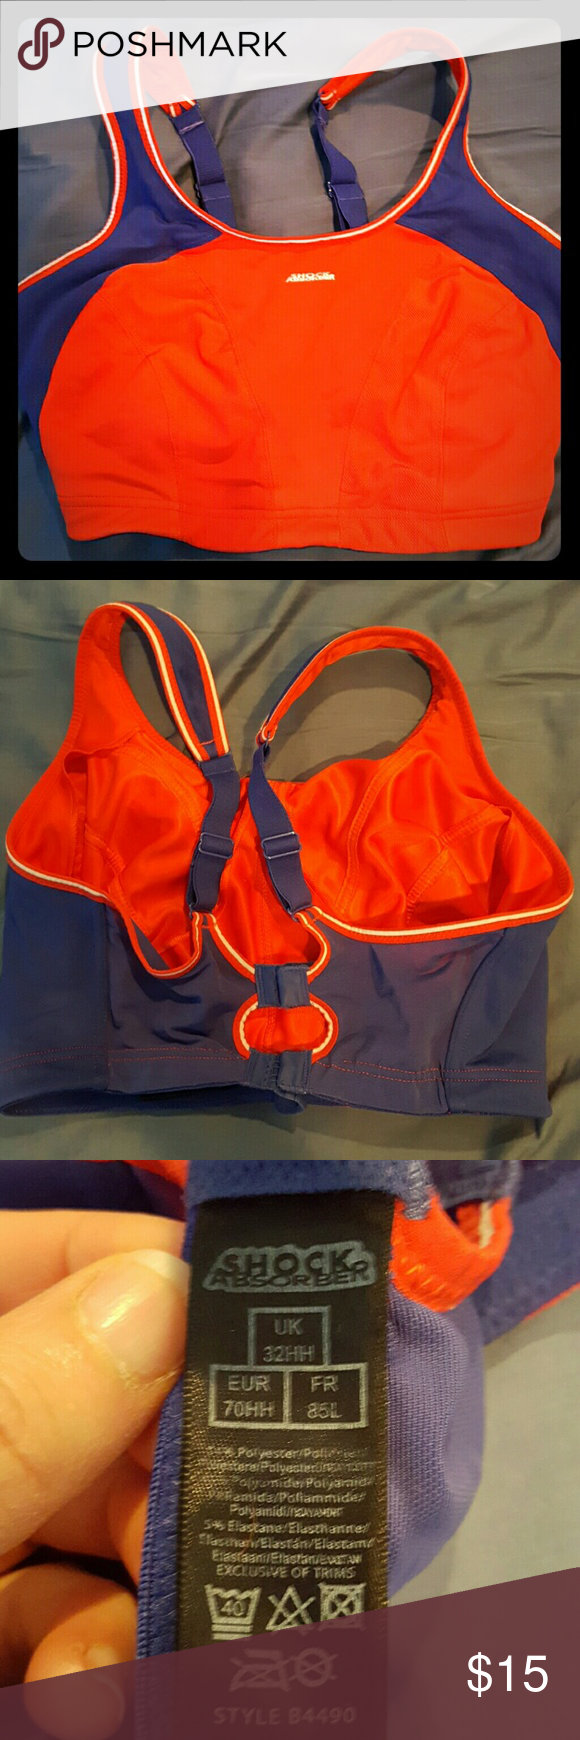 Red shock absorber sports bra Red & navy shock absorber sports bra.  Wireless. Very good condition.  32HH shock absorber  Intimates & Sleepwear Bras